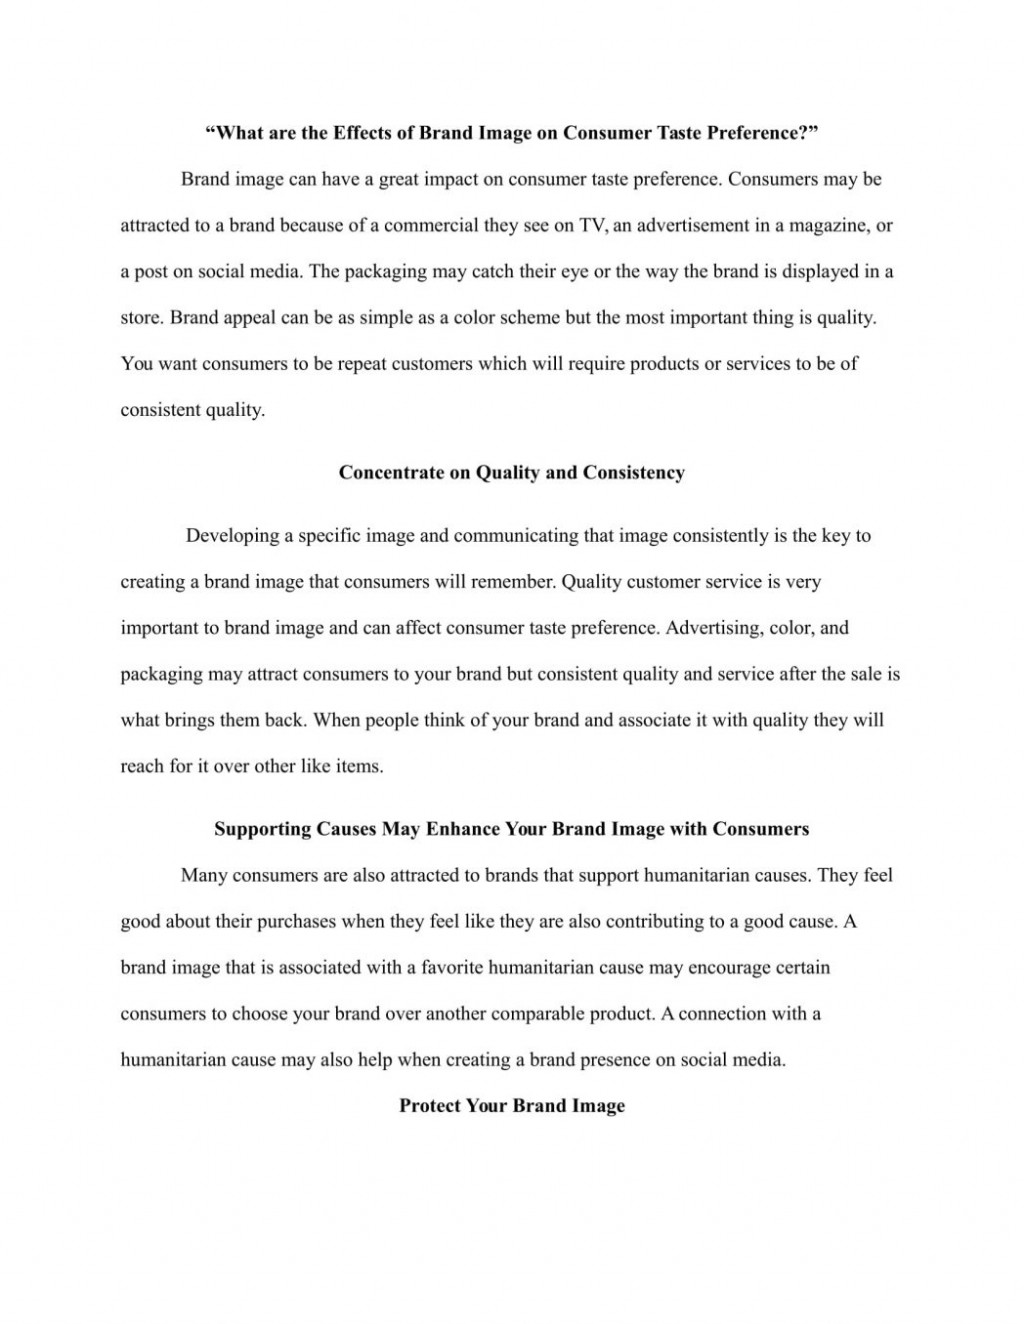 010 College Essay Heading Brand Expositions Engineering Application Expository Sam Margins Sample Personal Format Papers Entrance 1048x1356 Incredible Admissions Example Large